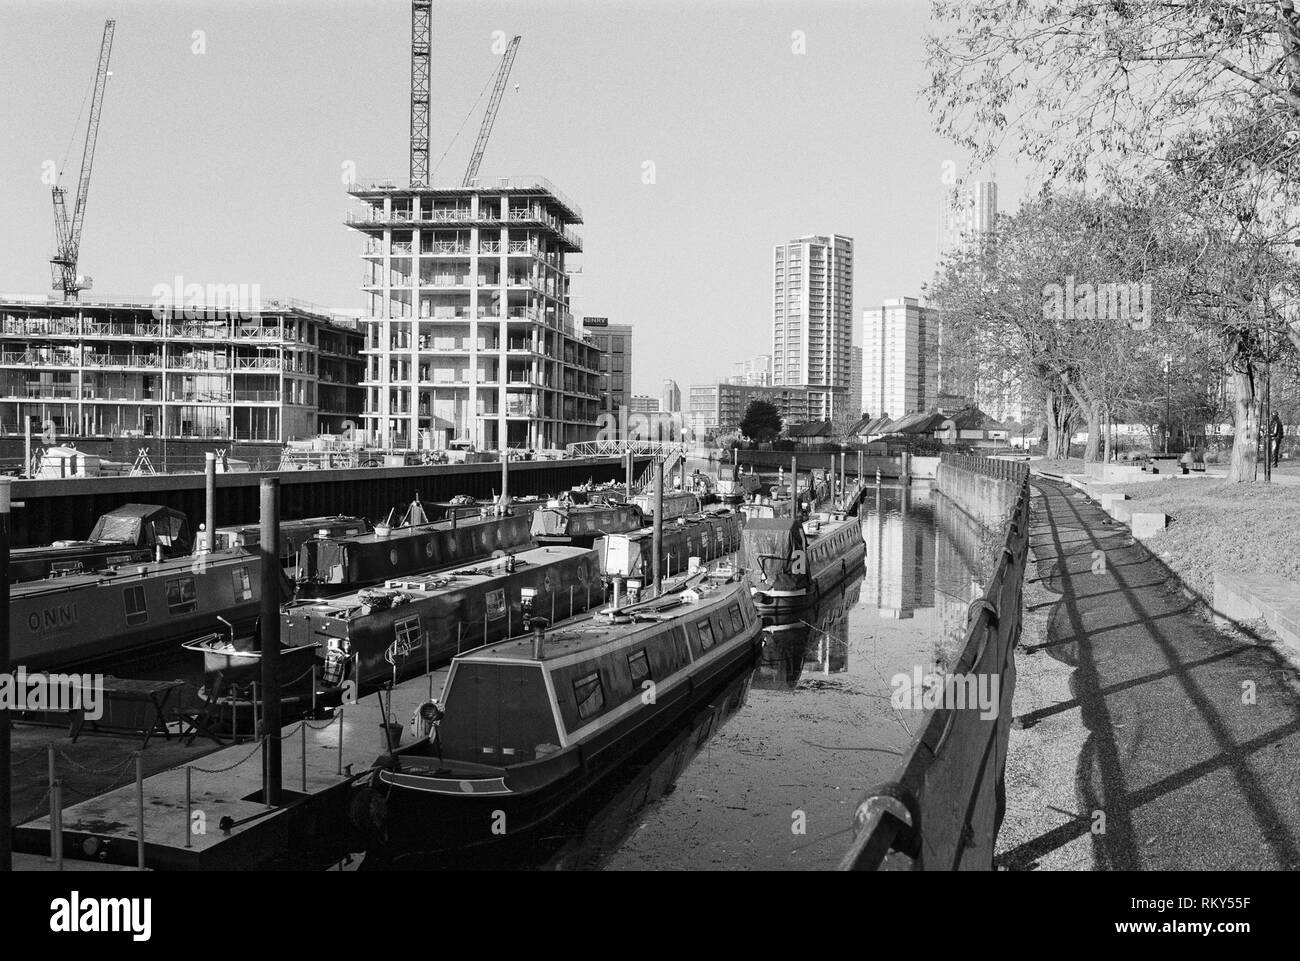 Narrowboats moored on Three Mills Wall River, Bromley-By-Bow, East London UK, looking towards Stratford, with new apartments under construction - Stock Image